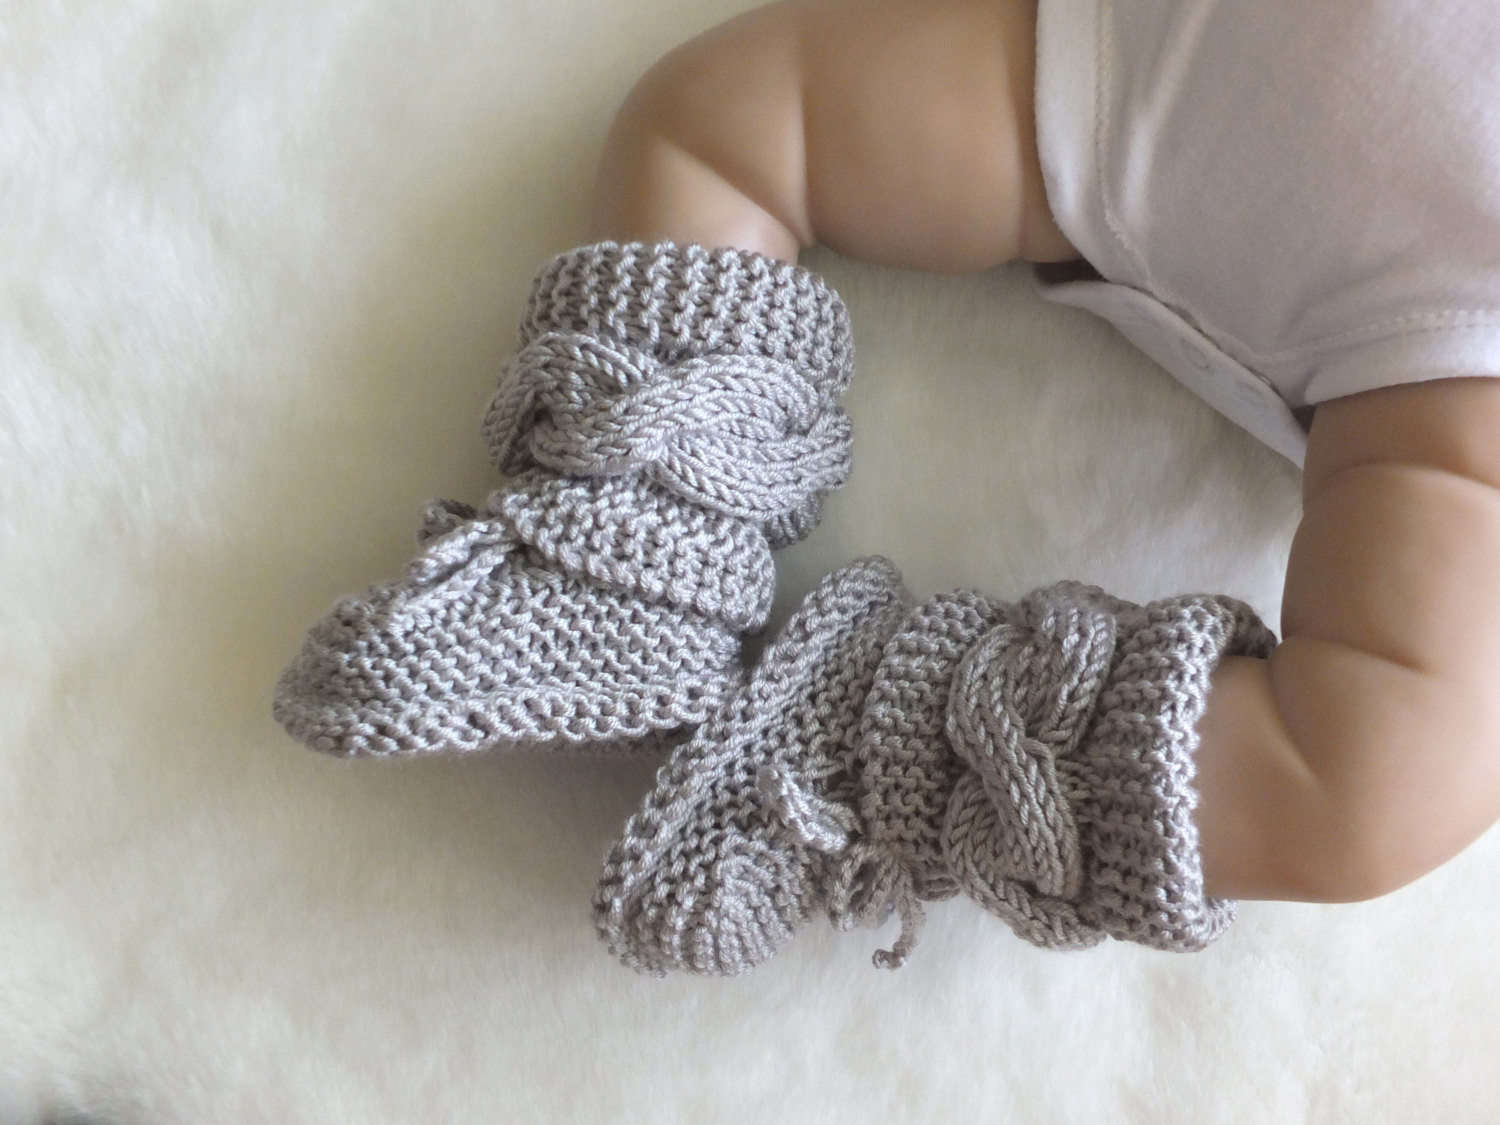 Knitted Baby Booties Luxury Baby Boots Gray Booties Knitted Baby Booties Baby Of Amazing 49 Photos Knitted Baby Booties